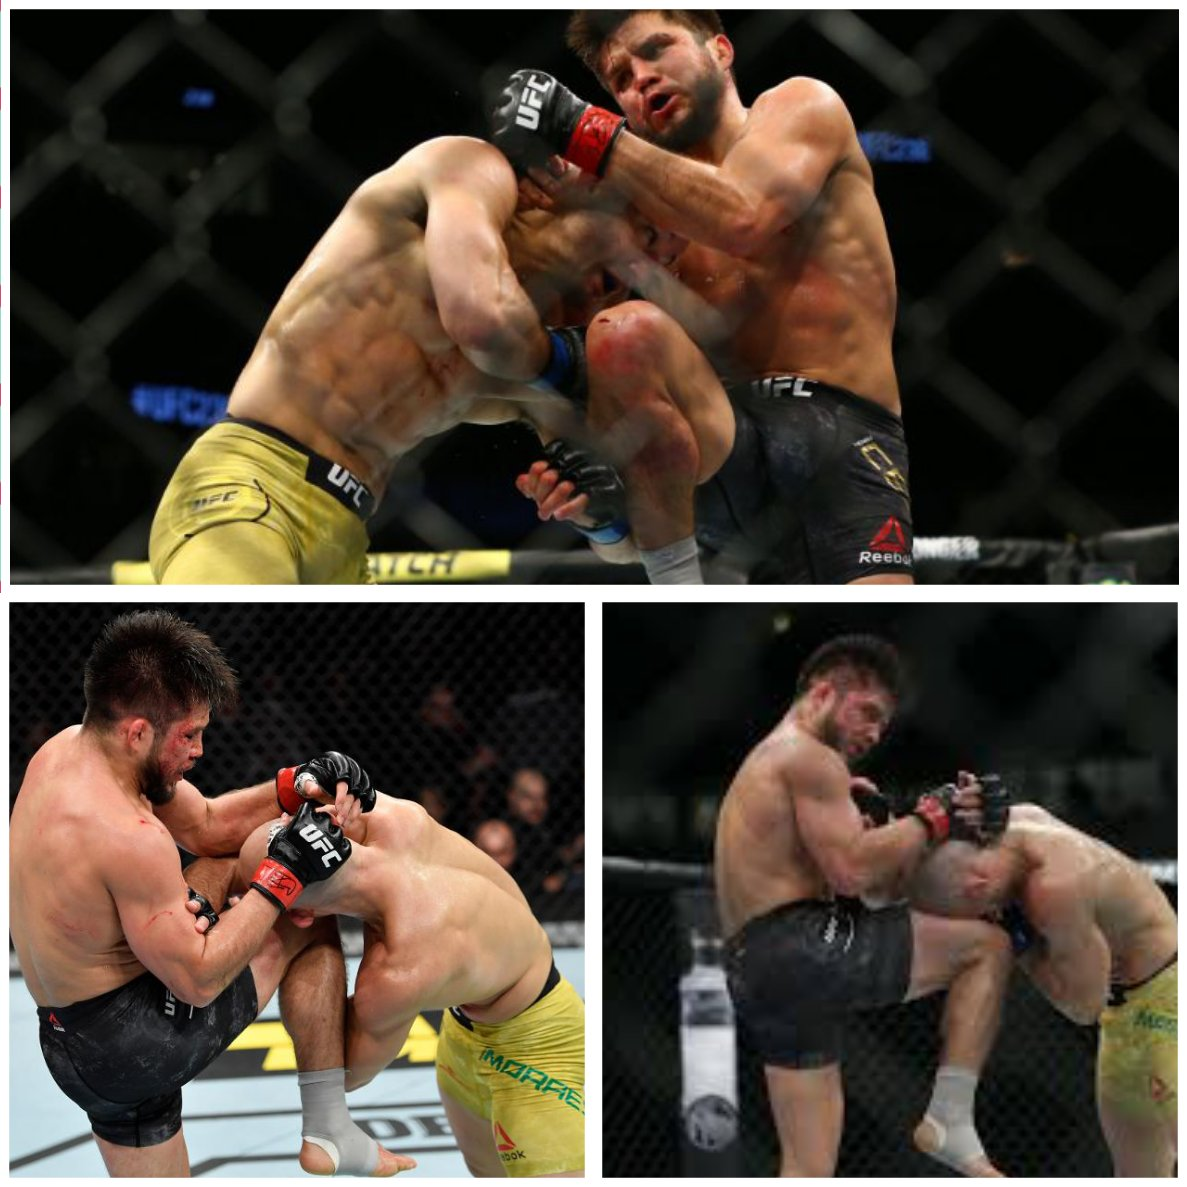 I think Cruz is fast enough to avoid getting wrapped up with Cejudo but if not, he might get hurt with Henry's nasty Thai clinch. How Henry is able to get his knees so damn high for being so short is incredible. Cruz vs father time could be the headline. #cejudovsmoraes #UFC249 https://t.co/MomUXQPuhn